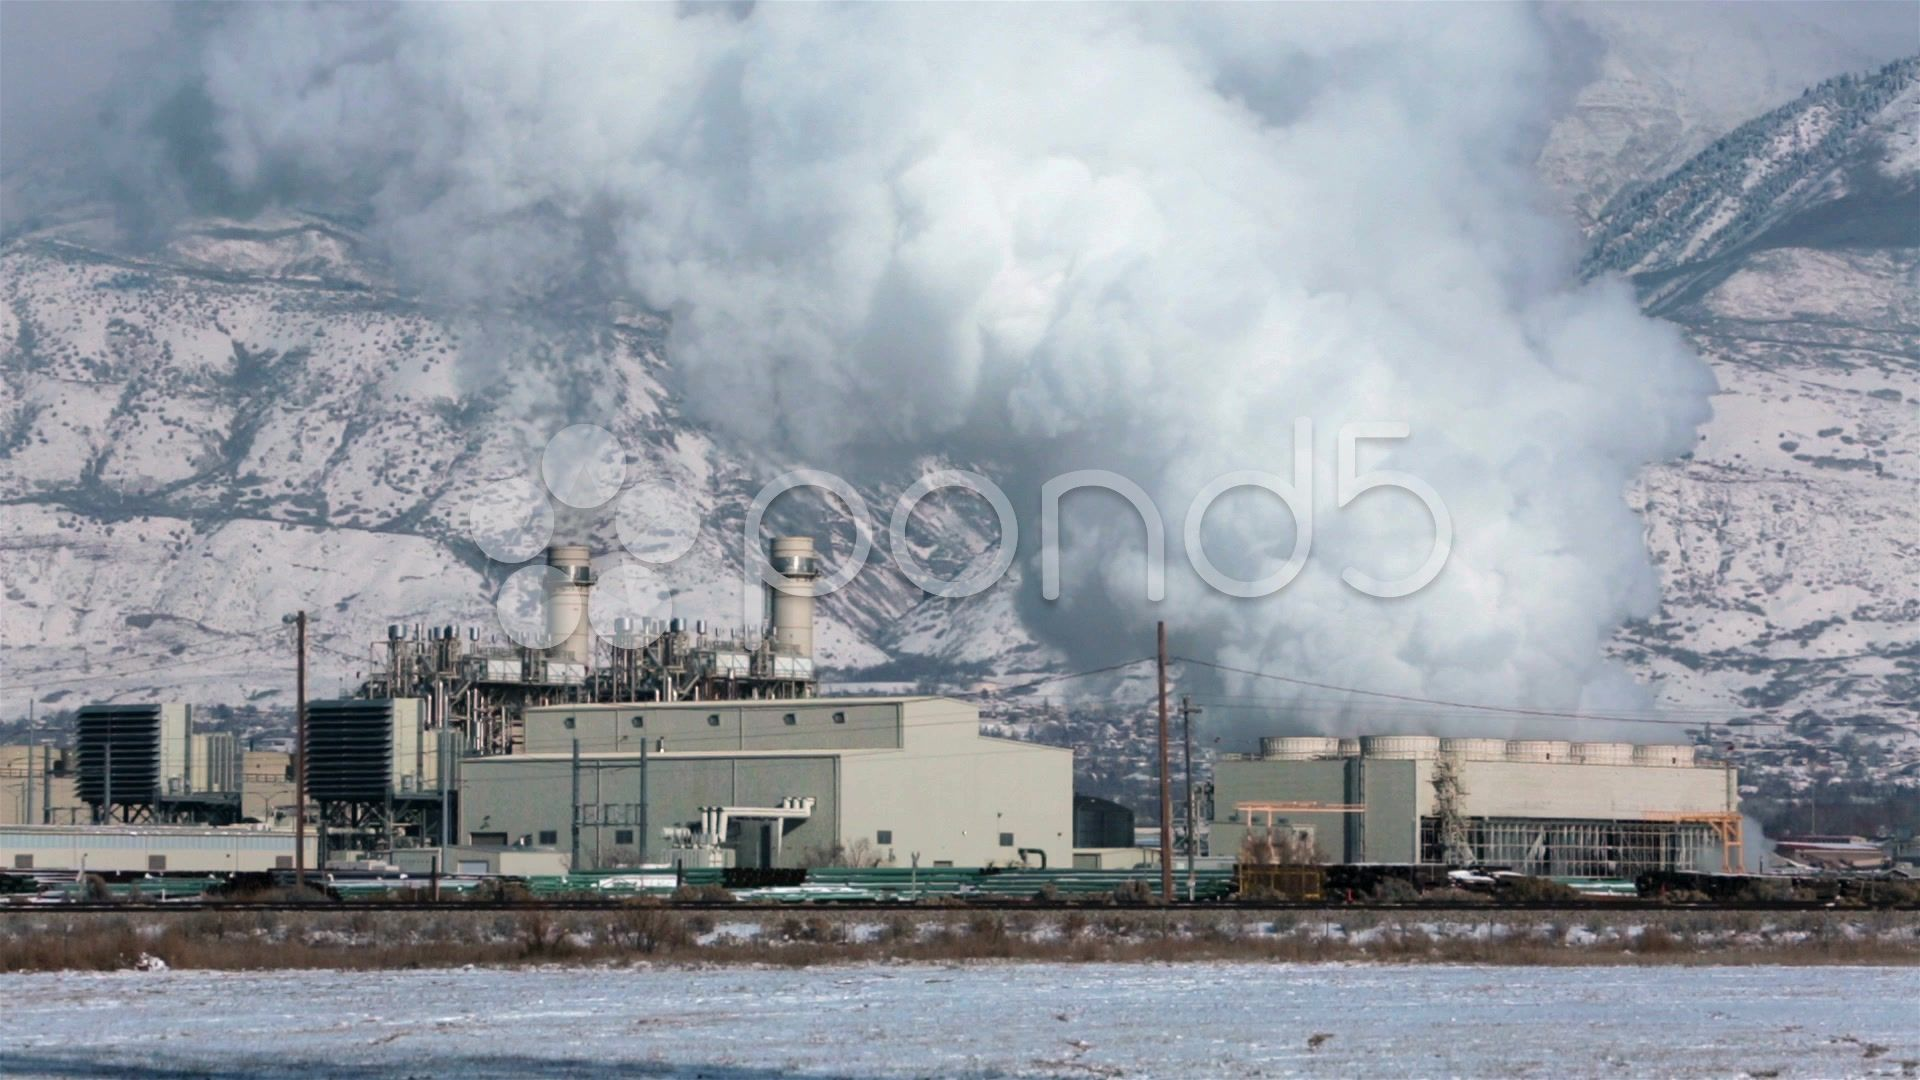 Natural Gas Electricity Power Plant Steam Smoke Hd 0191 Stock Footage Ad Power Plant Electricity Natural Power Plant Gas Gas Turbine